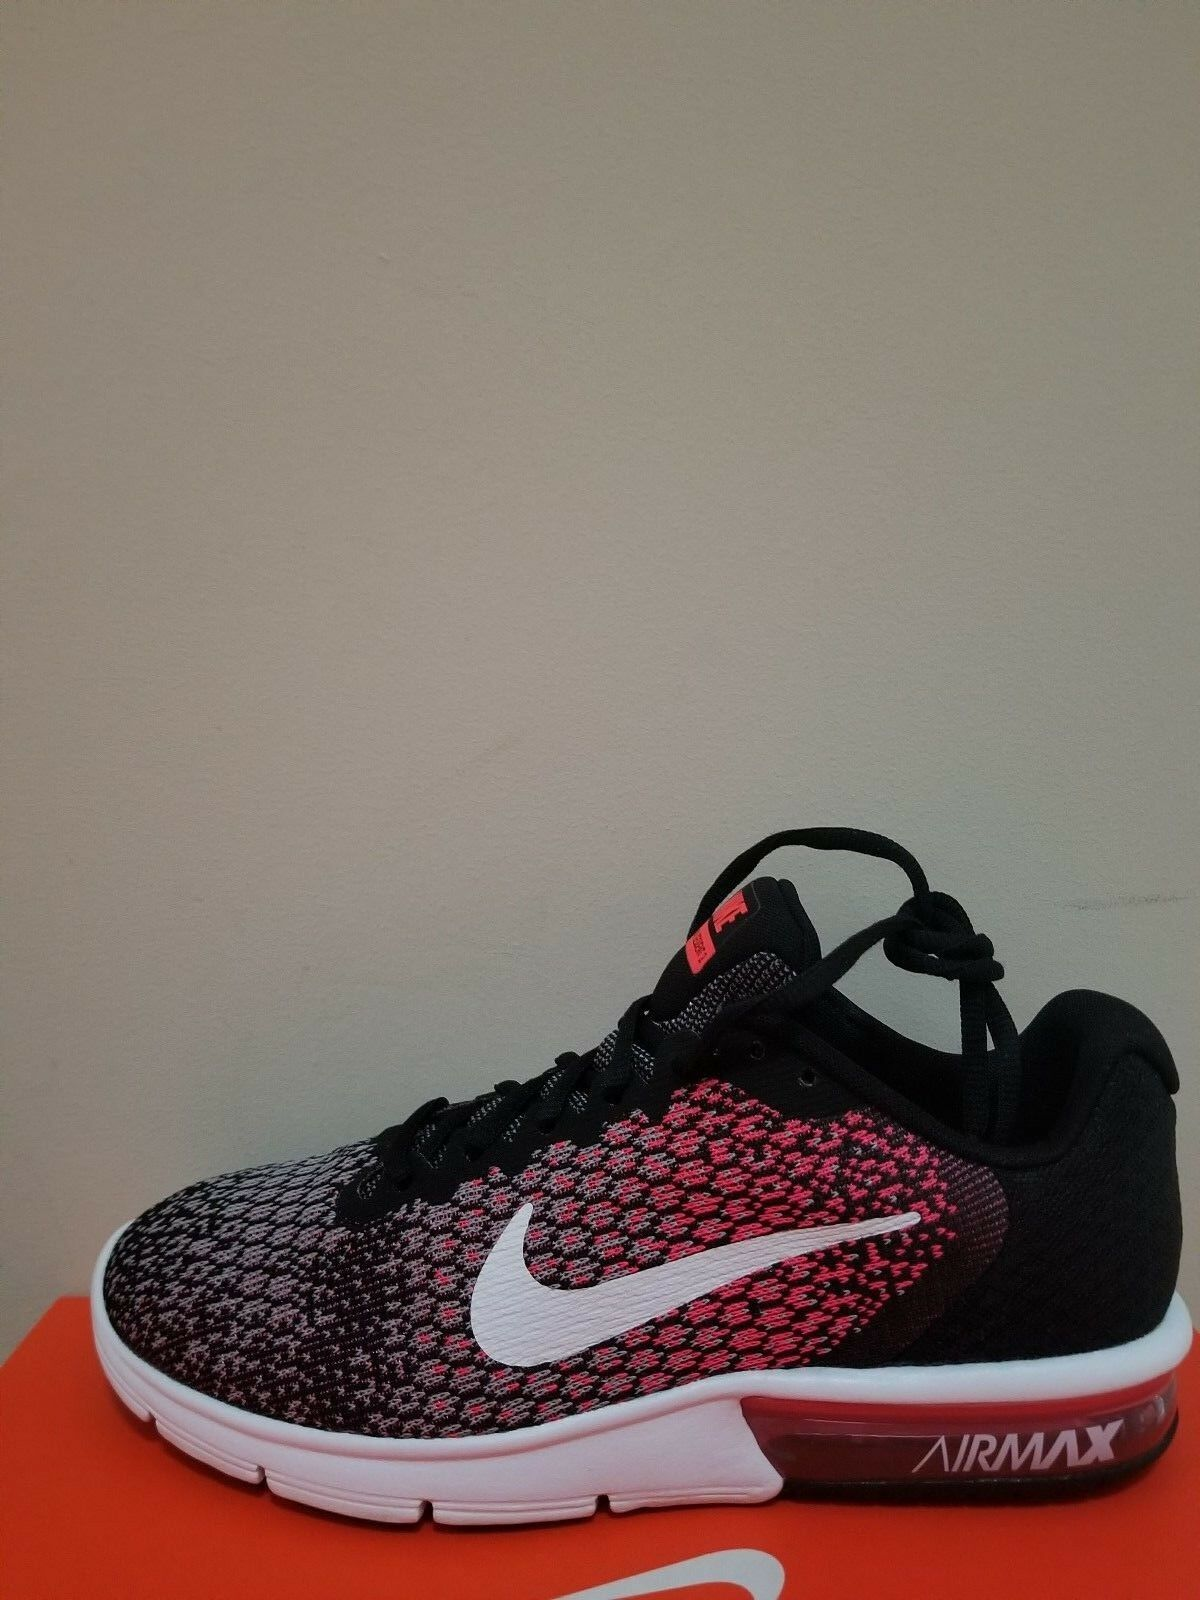 New Nike Women's Air Max Sequent 2 Running shoes Size 6 NIB